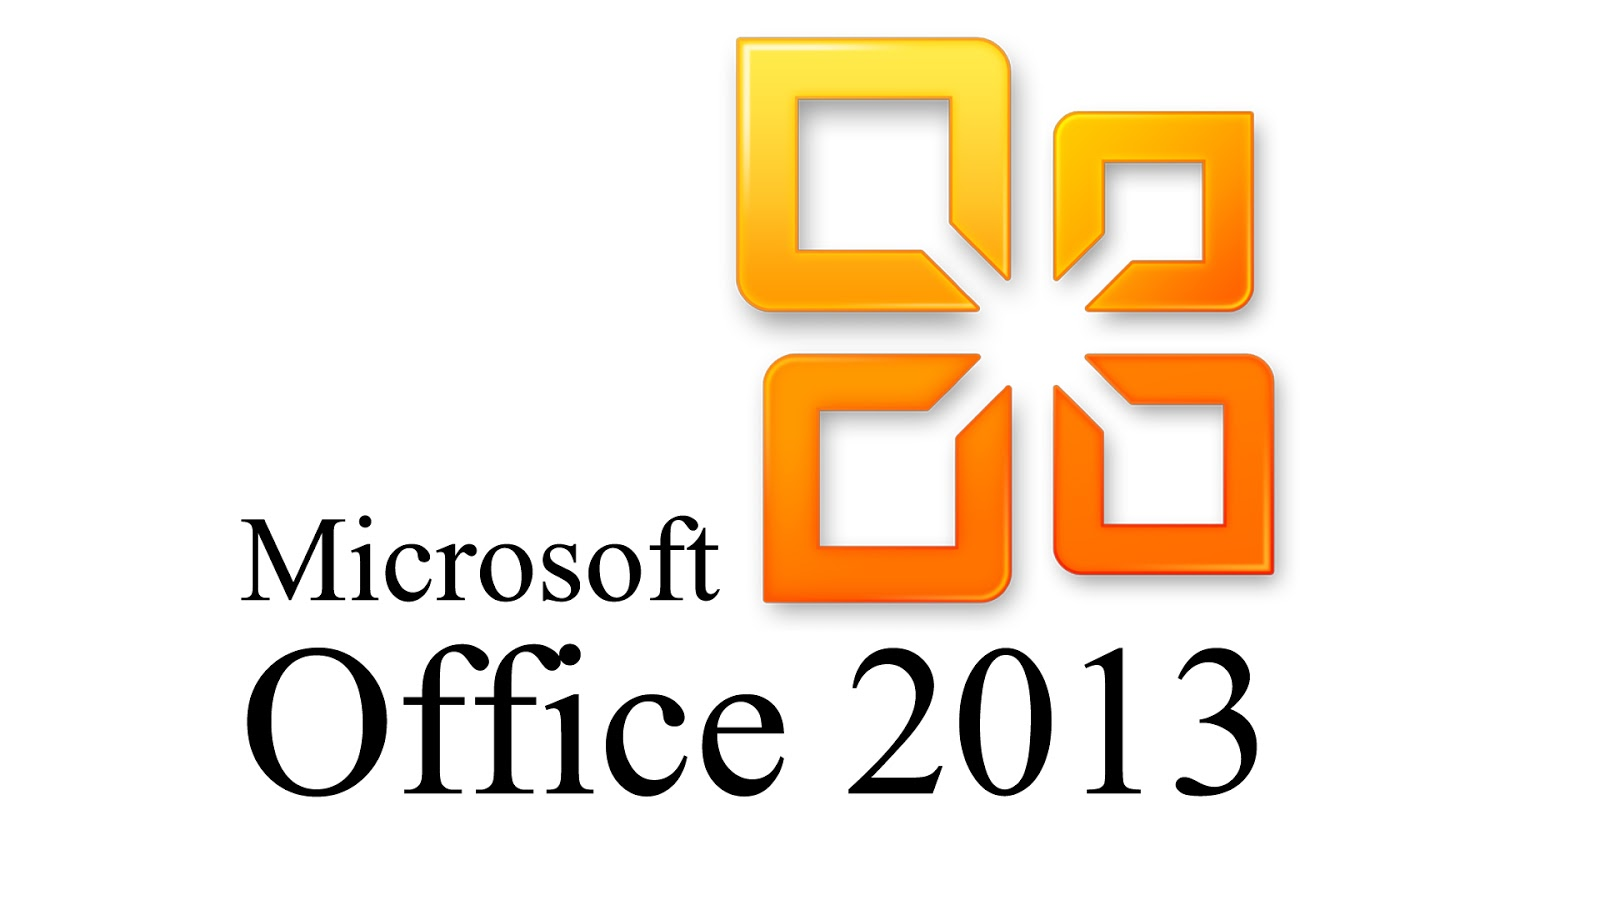 Microsoft Office 2013 Free Download for windows 7/8/10